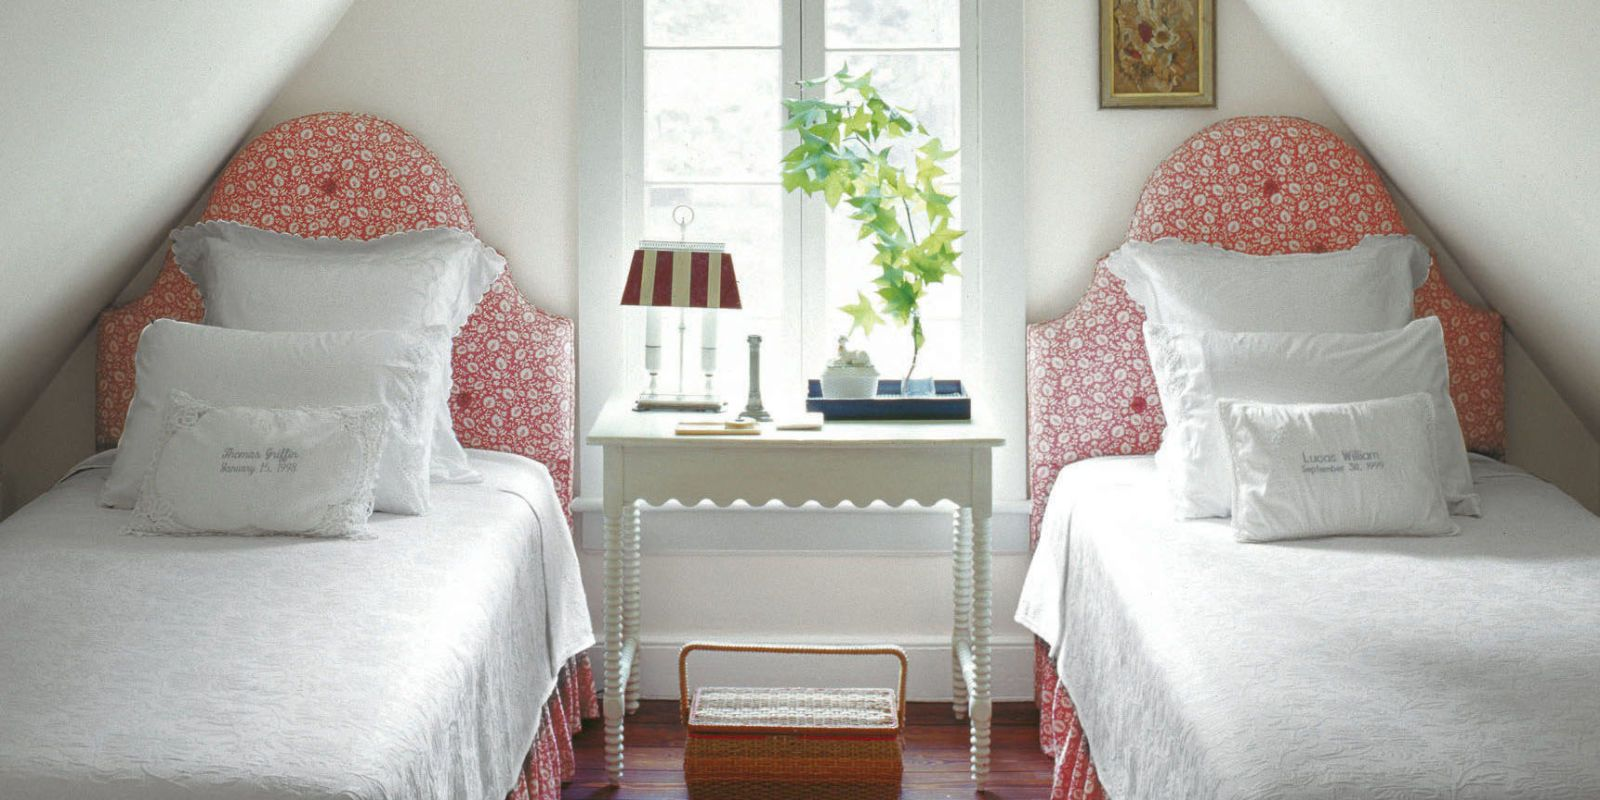 Decor tips for small bedrooms